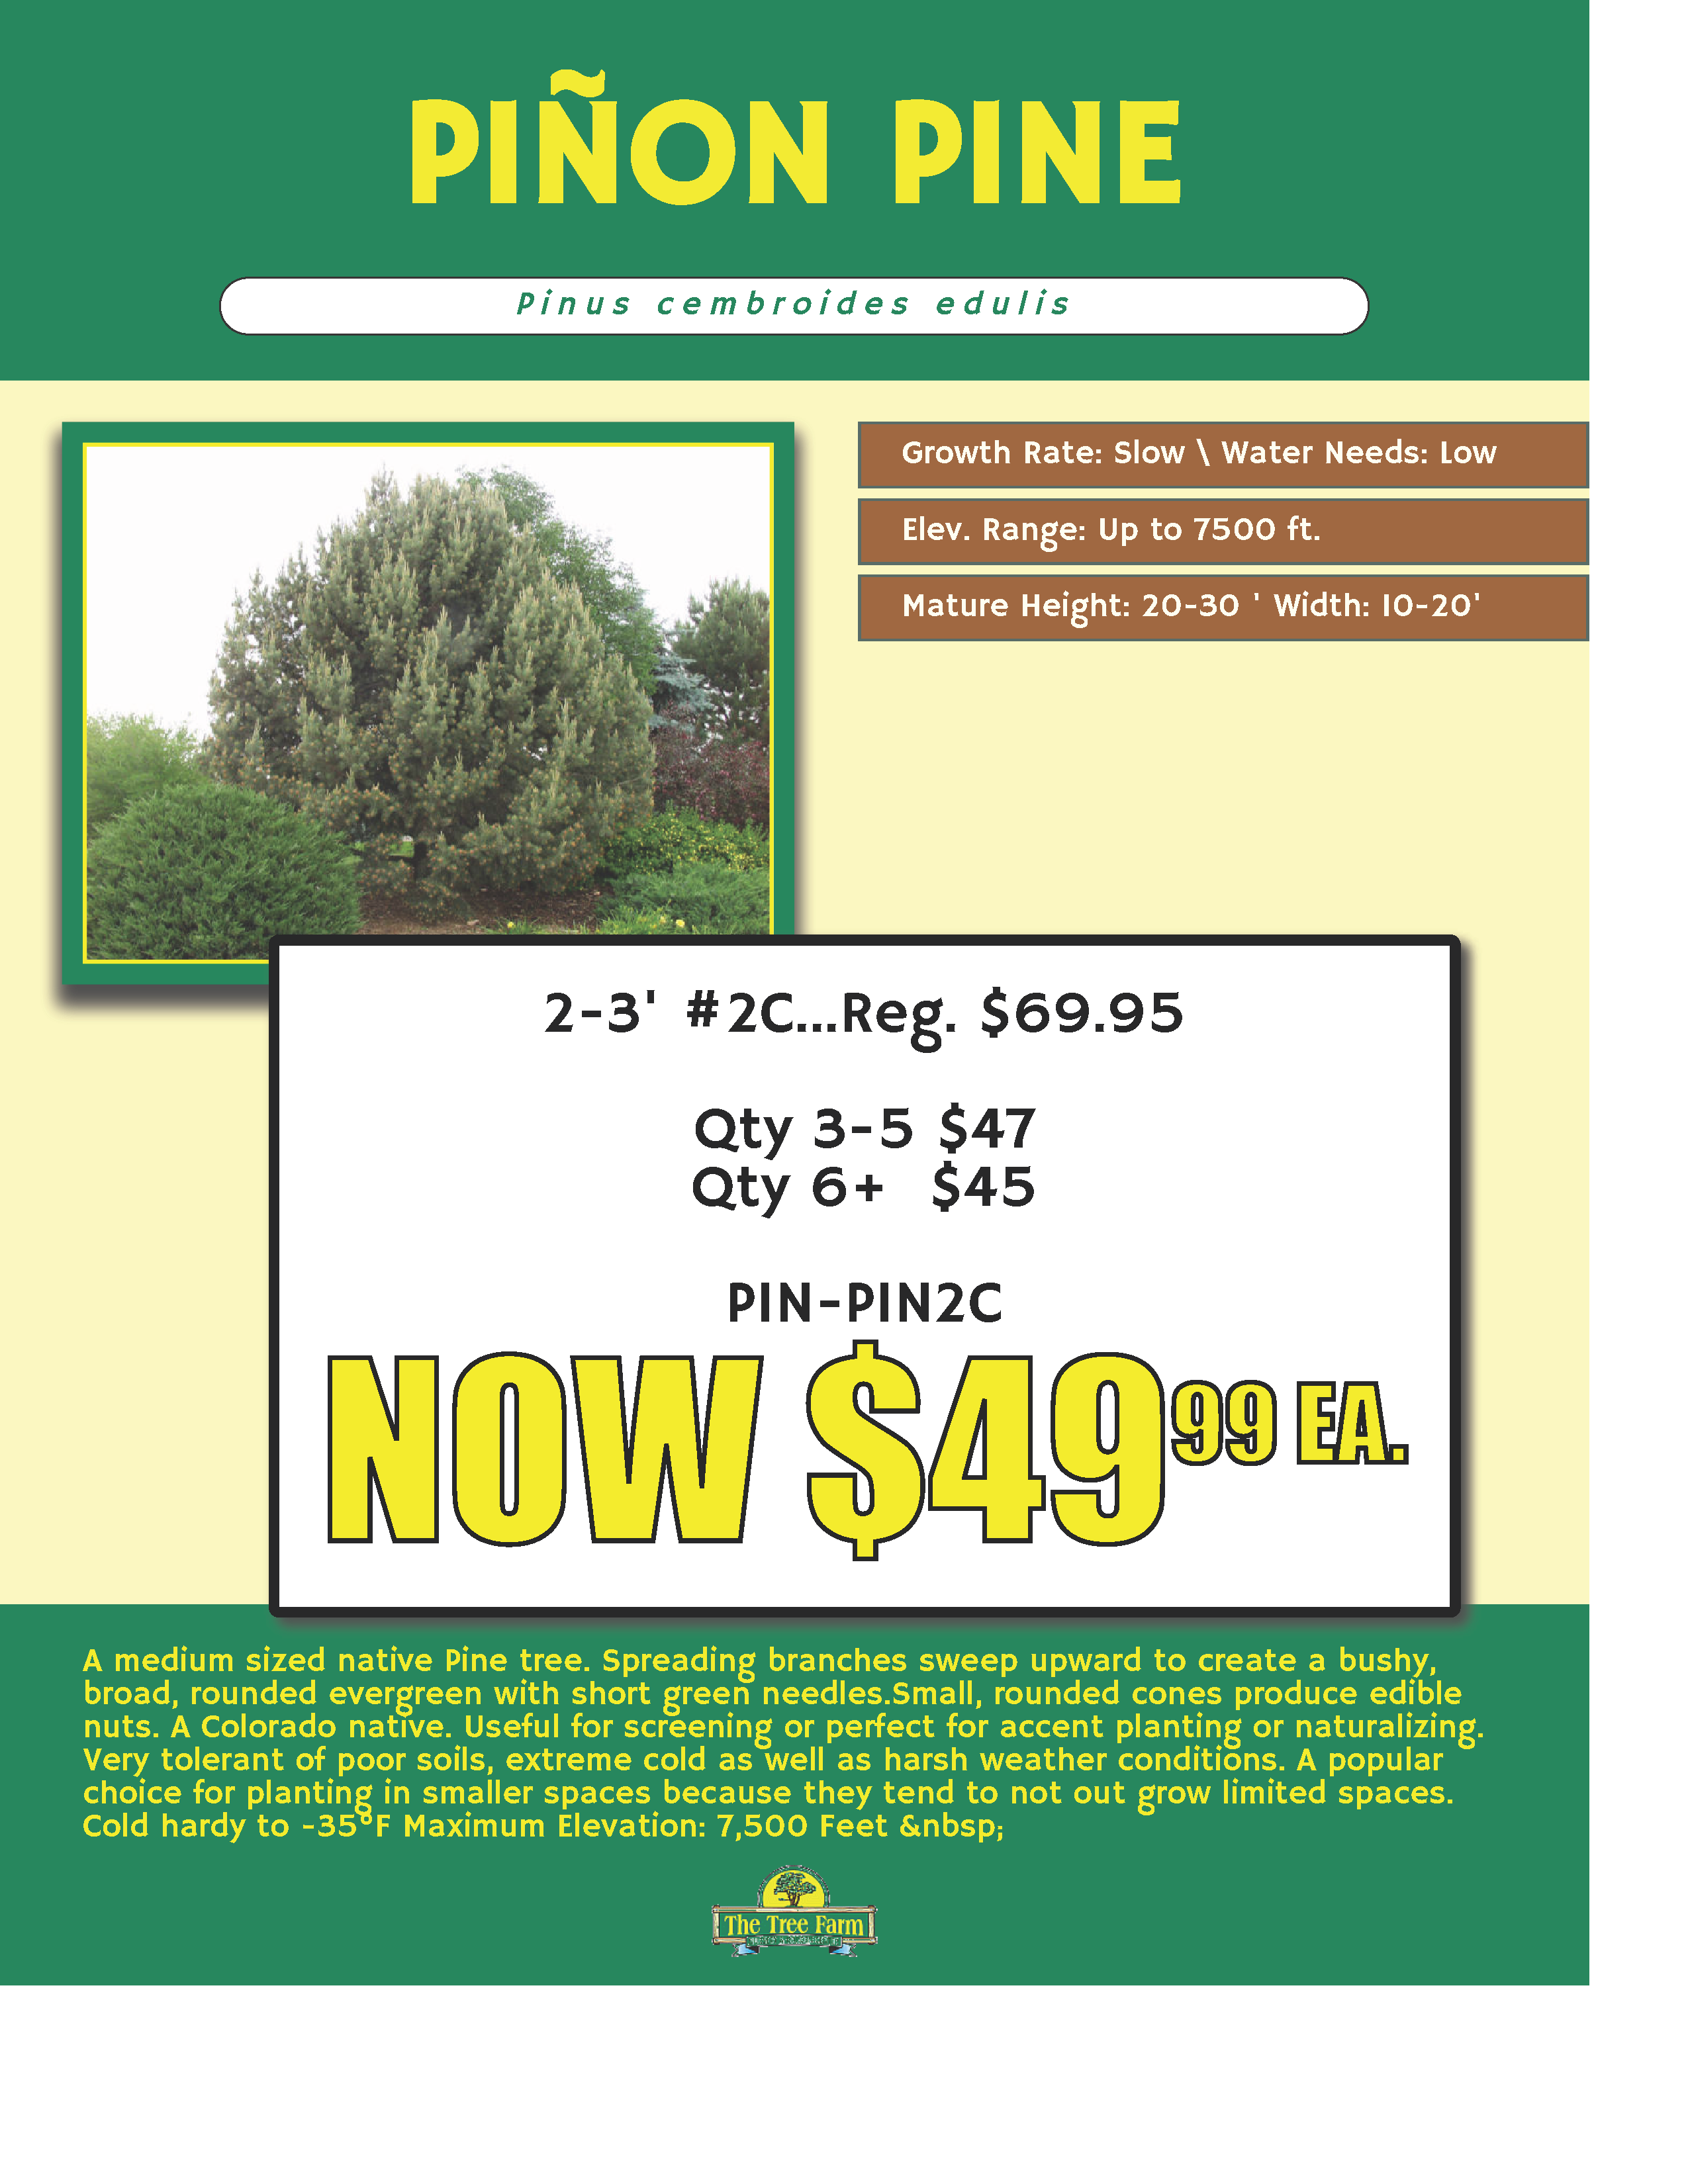 PINON PINE ON SALE NOW